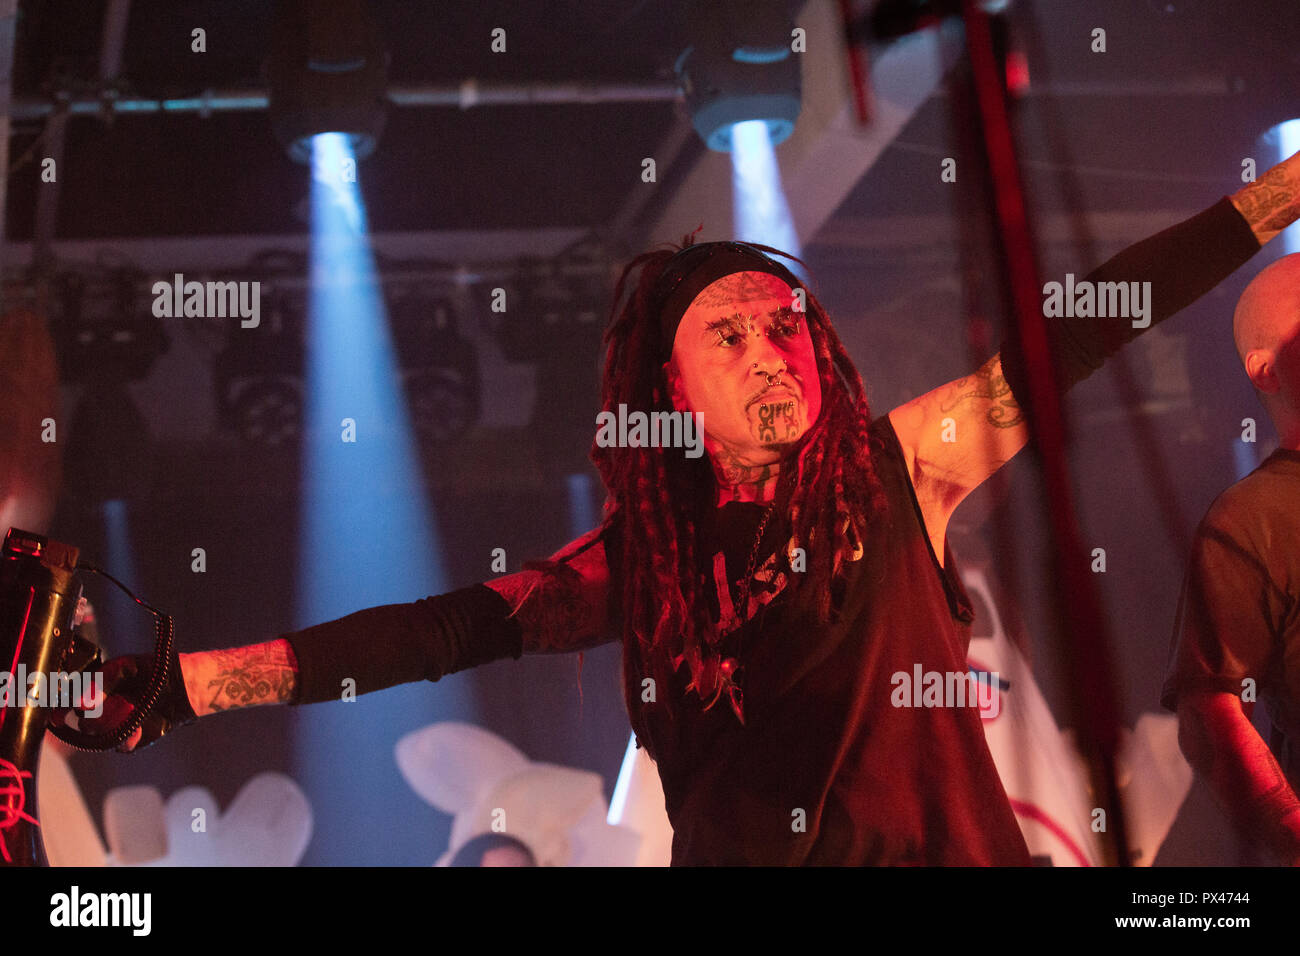 hight resolution of ministry al jourgensen with bullhorn 18th july 2018 glasgow swg3 stock